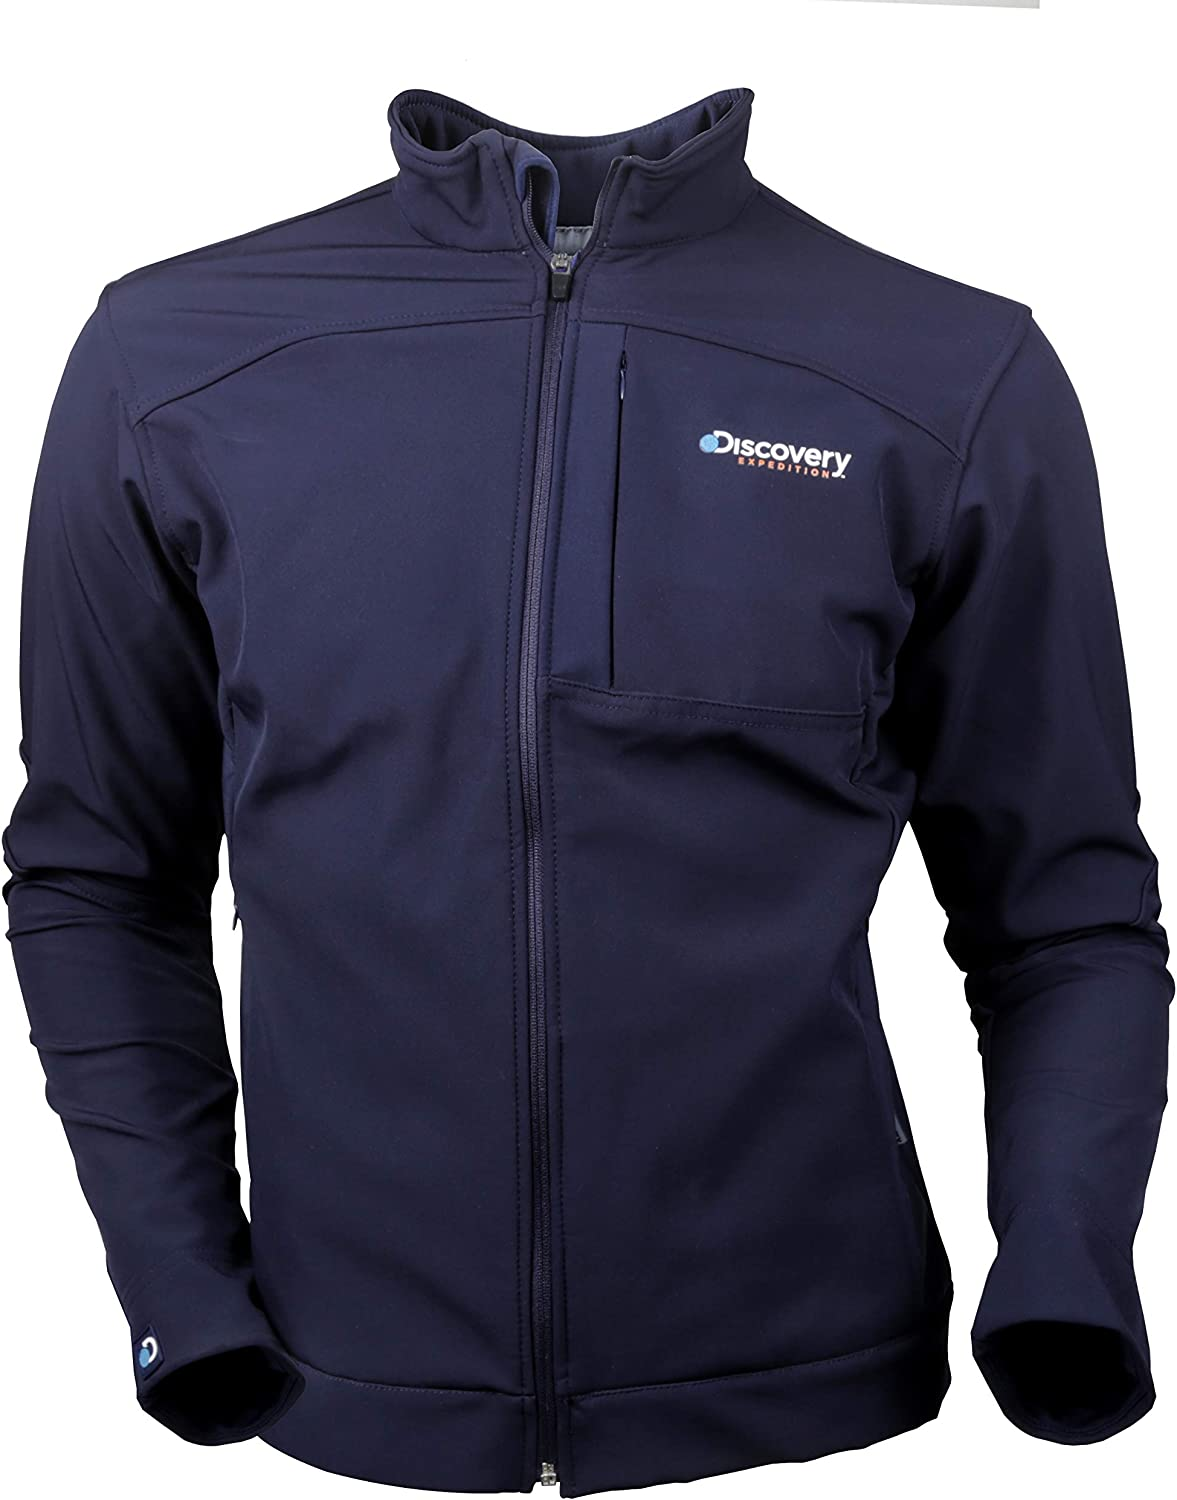 Discovery EXPEDITION Mens Sport Jacket Navy